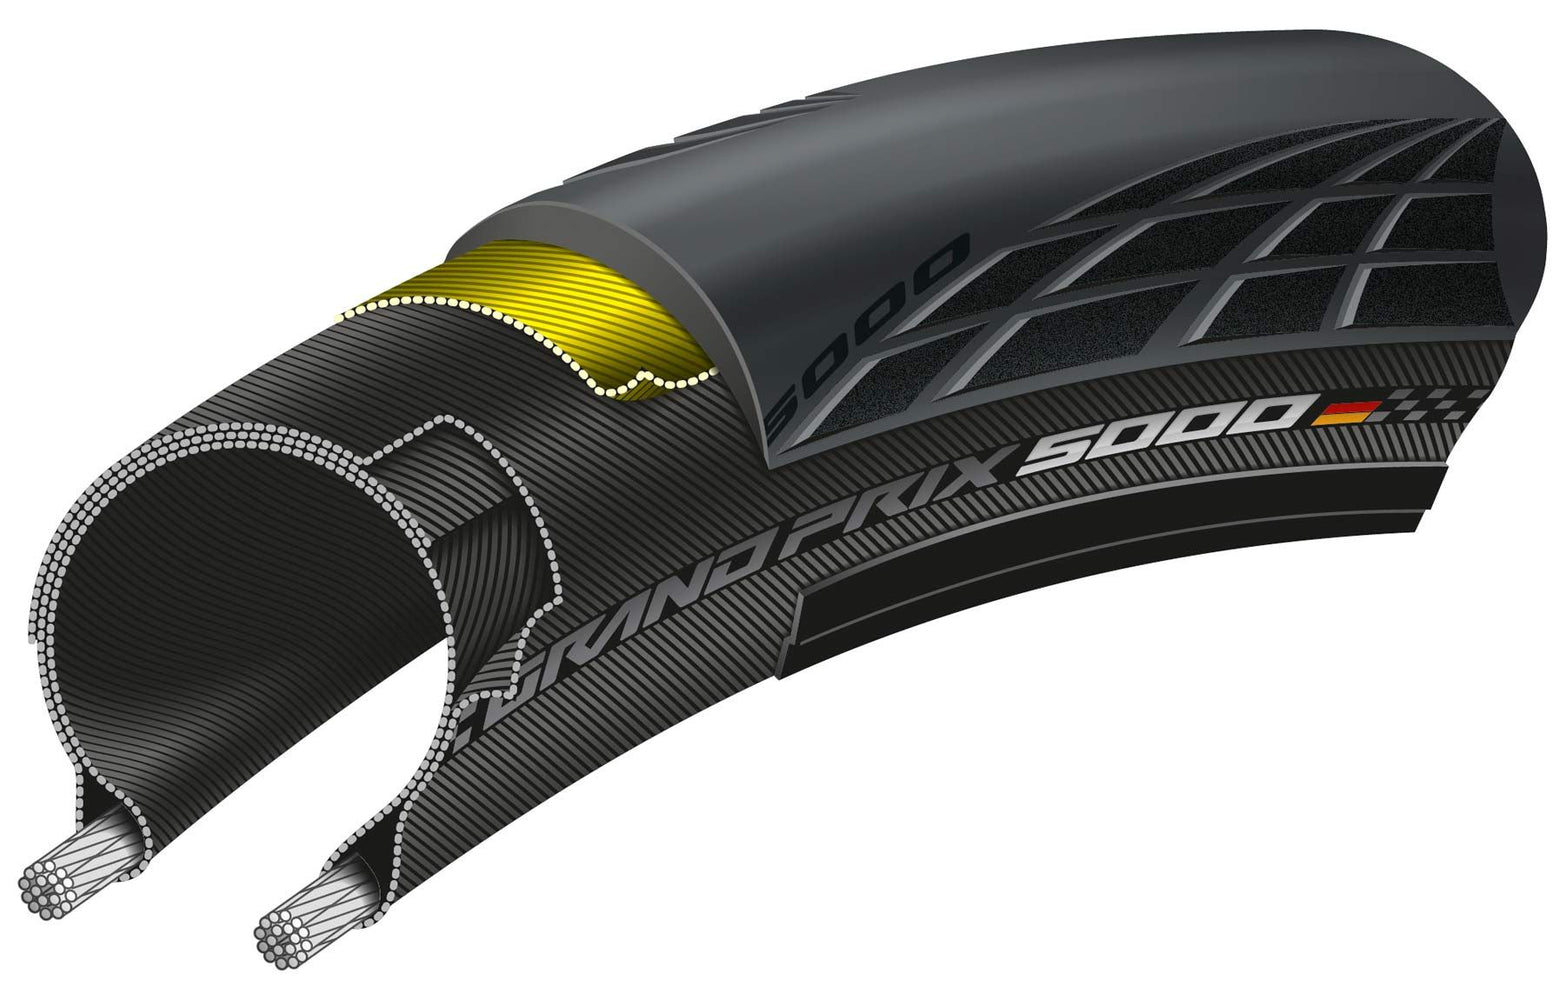 Continental Grand Prix GP5000 Folding Road Tyre Clincher